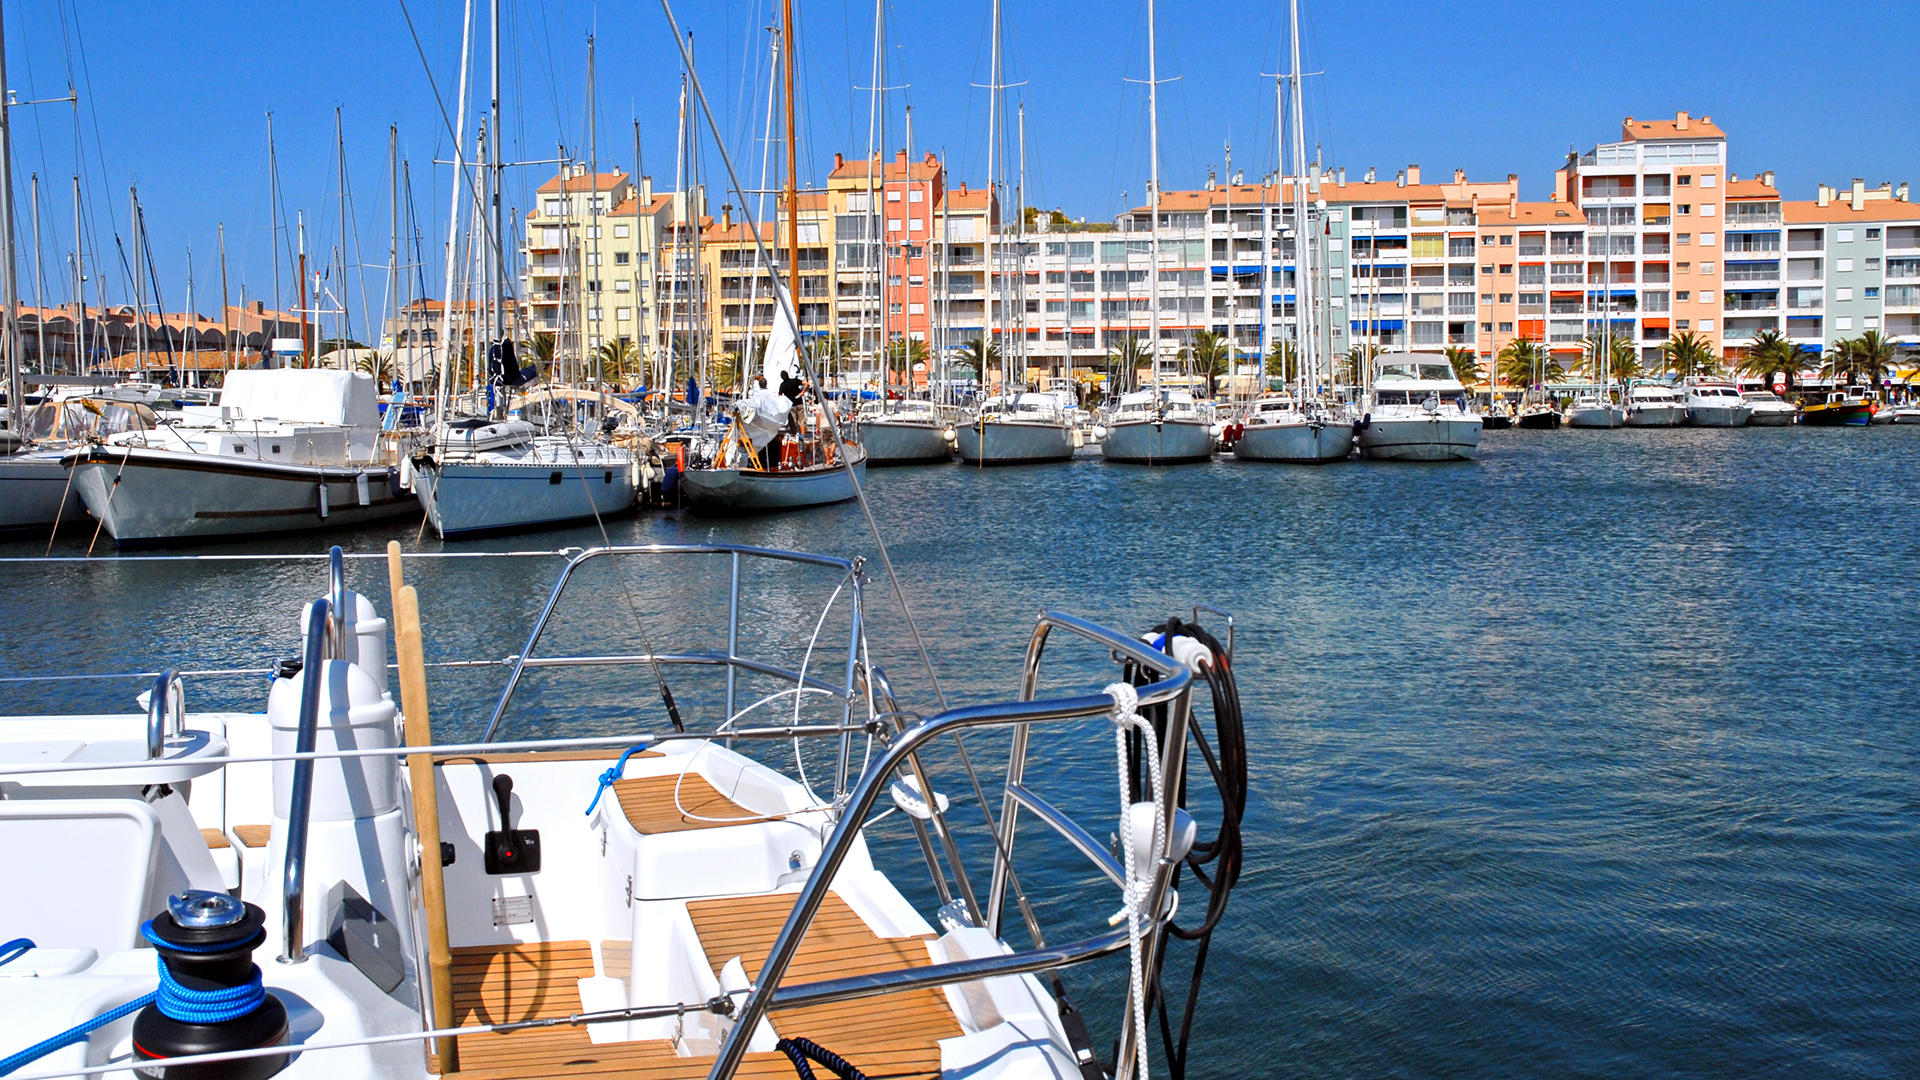 Port Toulon Travel Guide Hyeres Plan Your Trip To Hyeres With Travel By Air